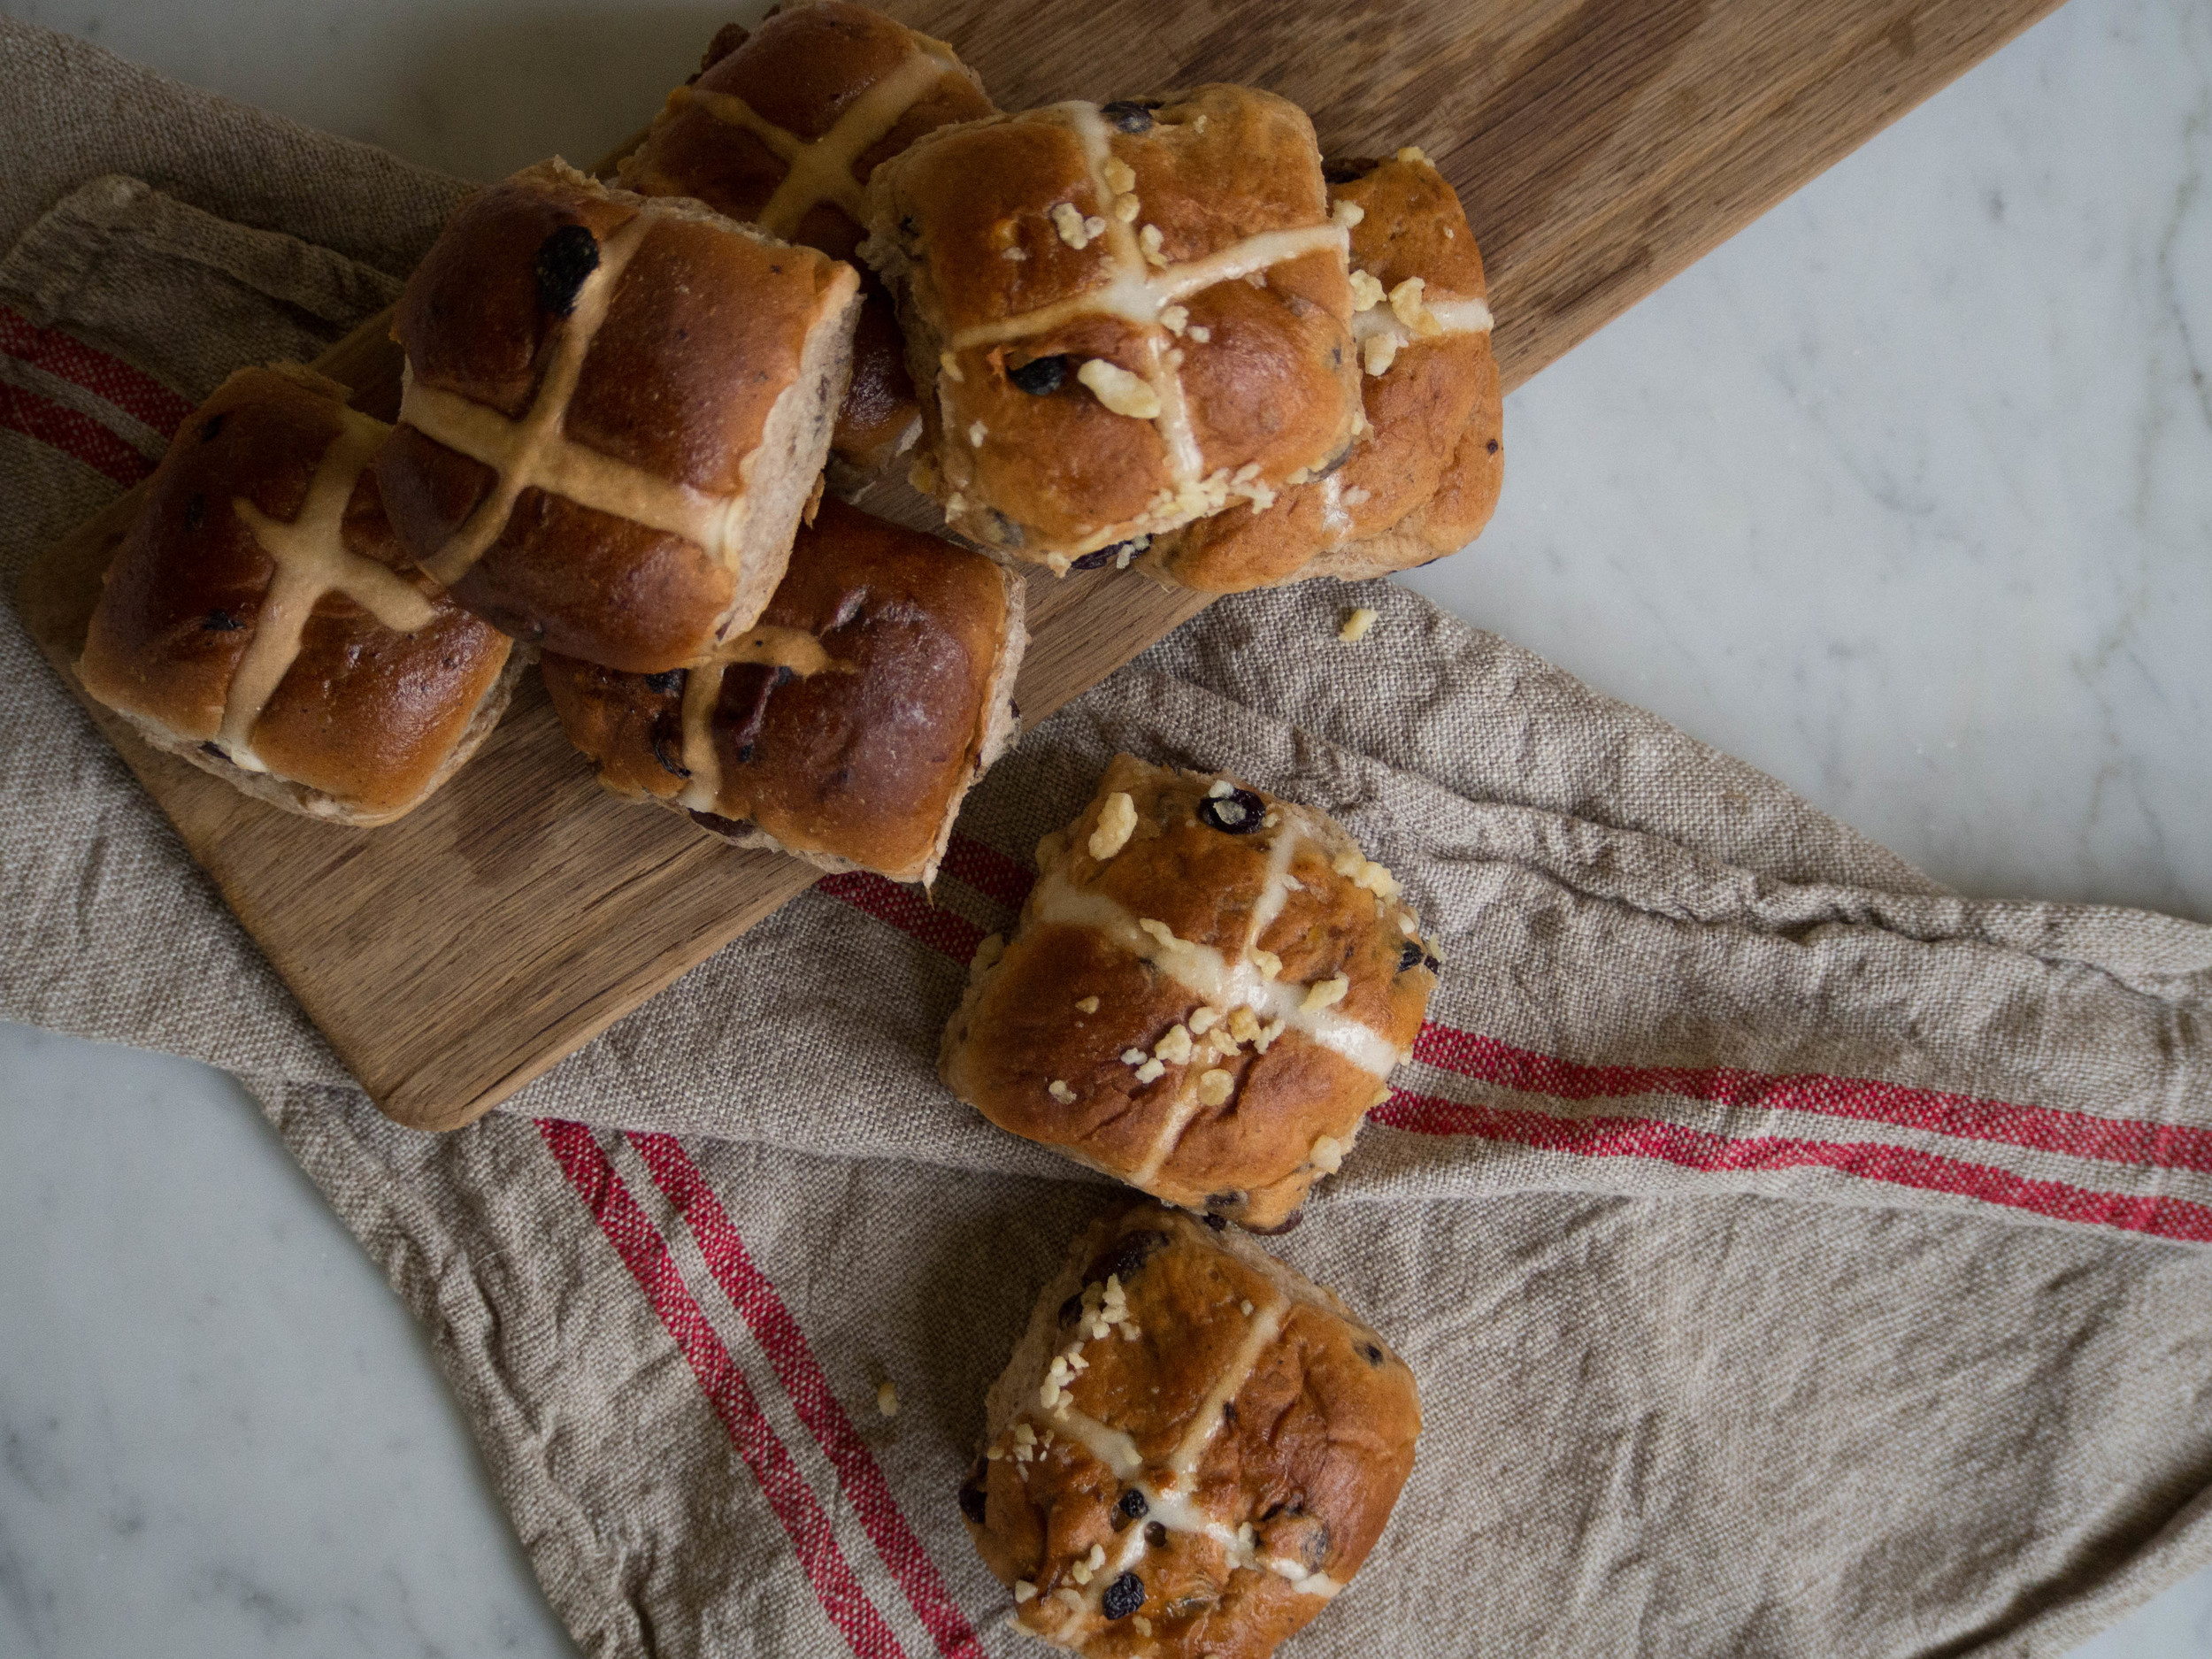 Hot Cross Buns from Baker's Delight (left) and Jamie Oliver's Stem Ginger Hot Cross Buns from Woolworths (right).